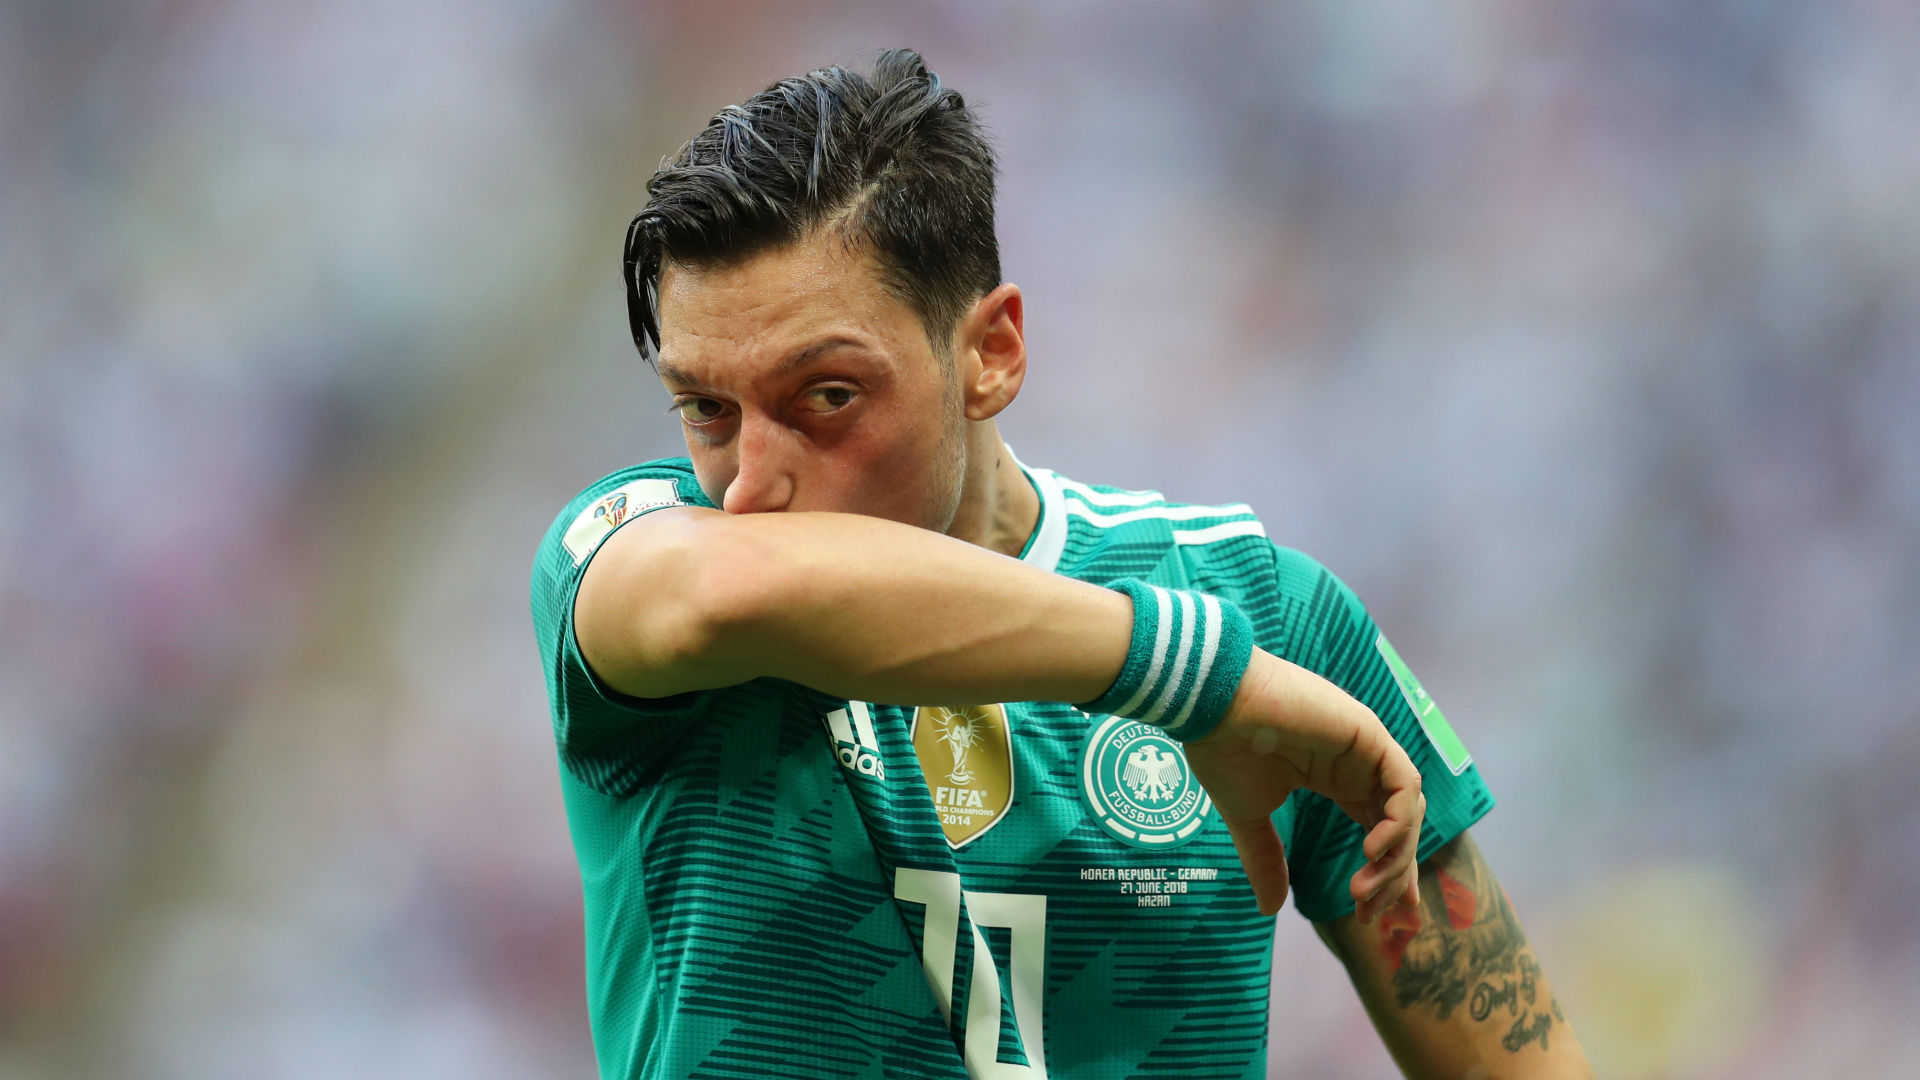 Impact of Ozil retirement unprecedented in Germany - DFB vice-president